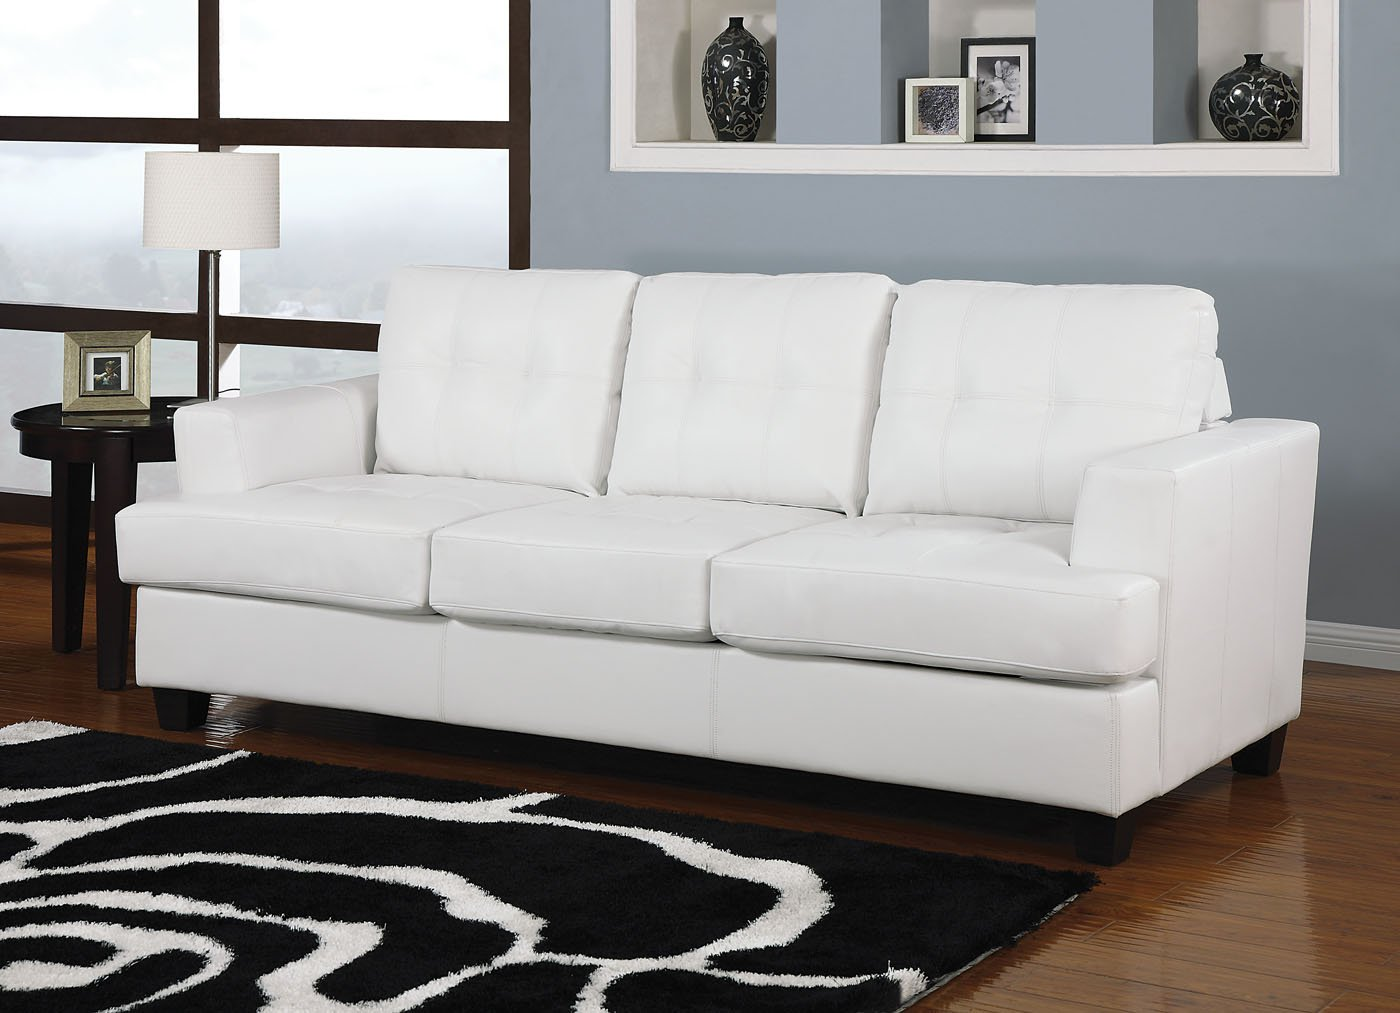 Amazon.com: Simple Relax Platinum White Bonded Leather Sofa ...